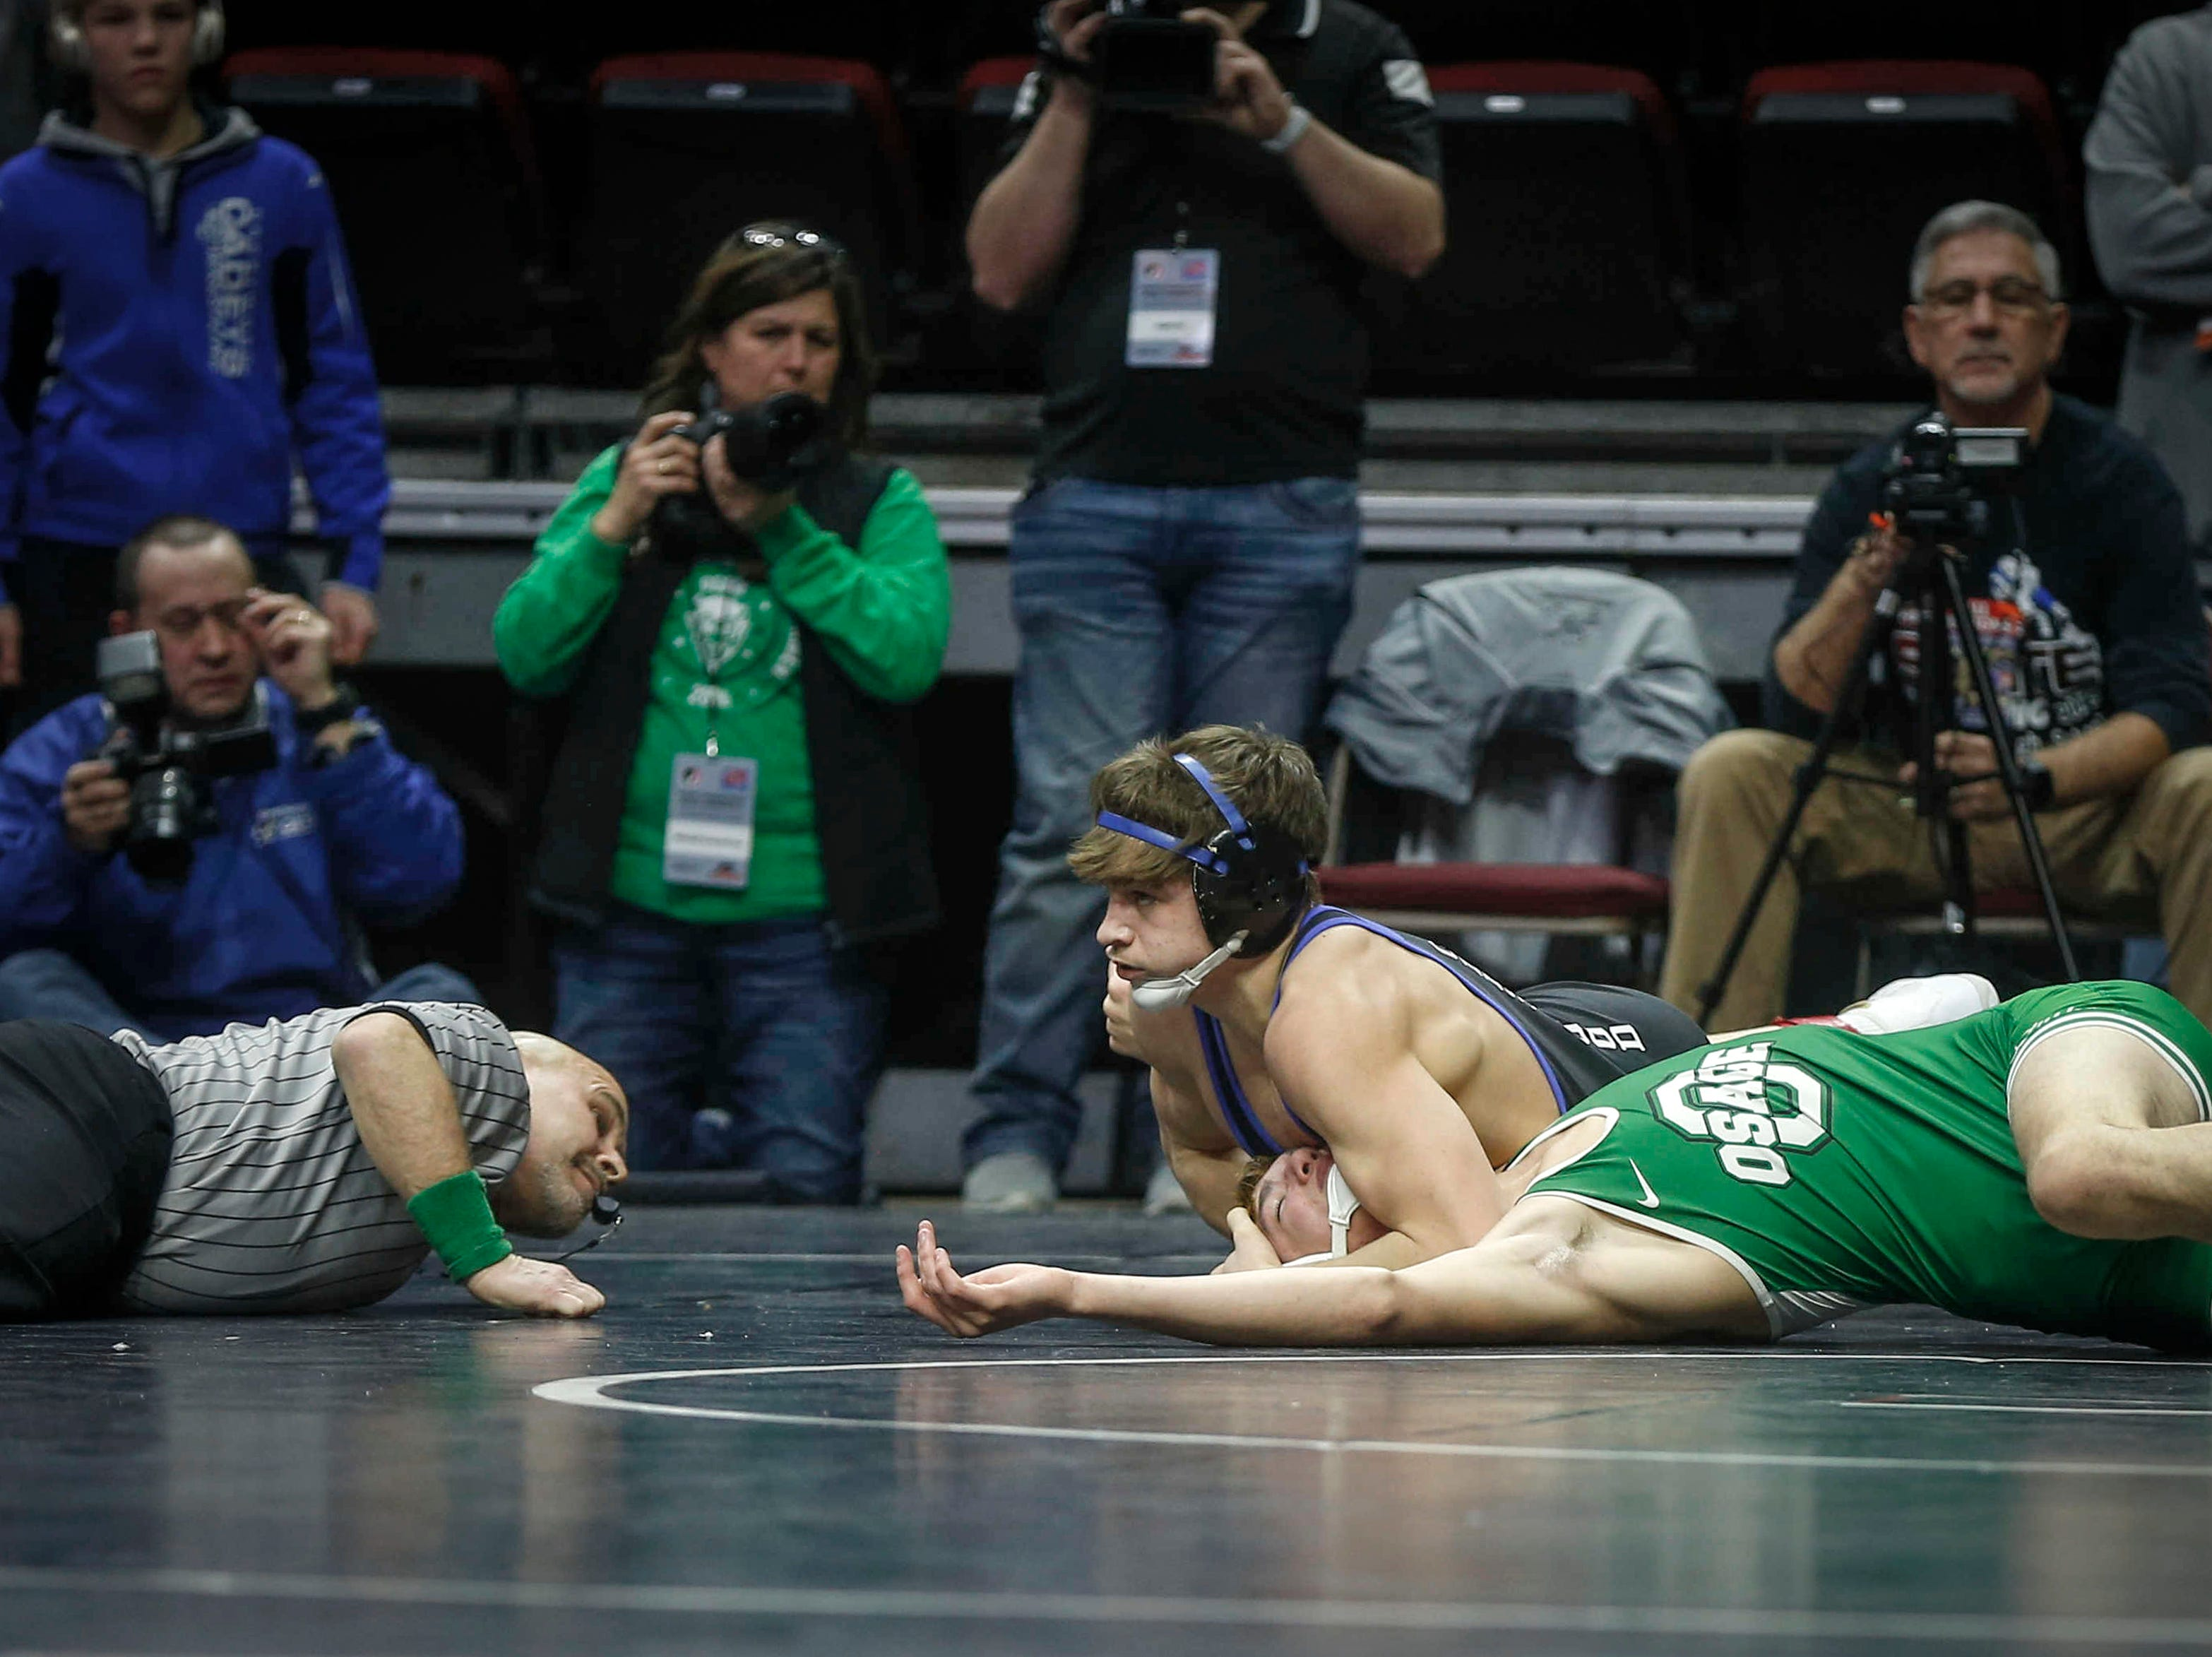 Crestwood's Colter Bye pins Osage's Owen Muller at 182 pounds during the 2019 Iowa high school dual wrestling state tournament on Wednesday, Feb. 13, 2019, at Wells Fargo Arena in Des Moines.